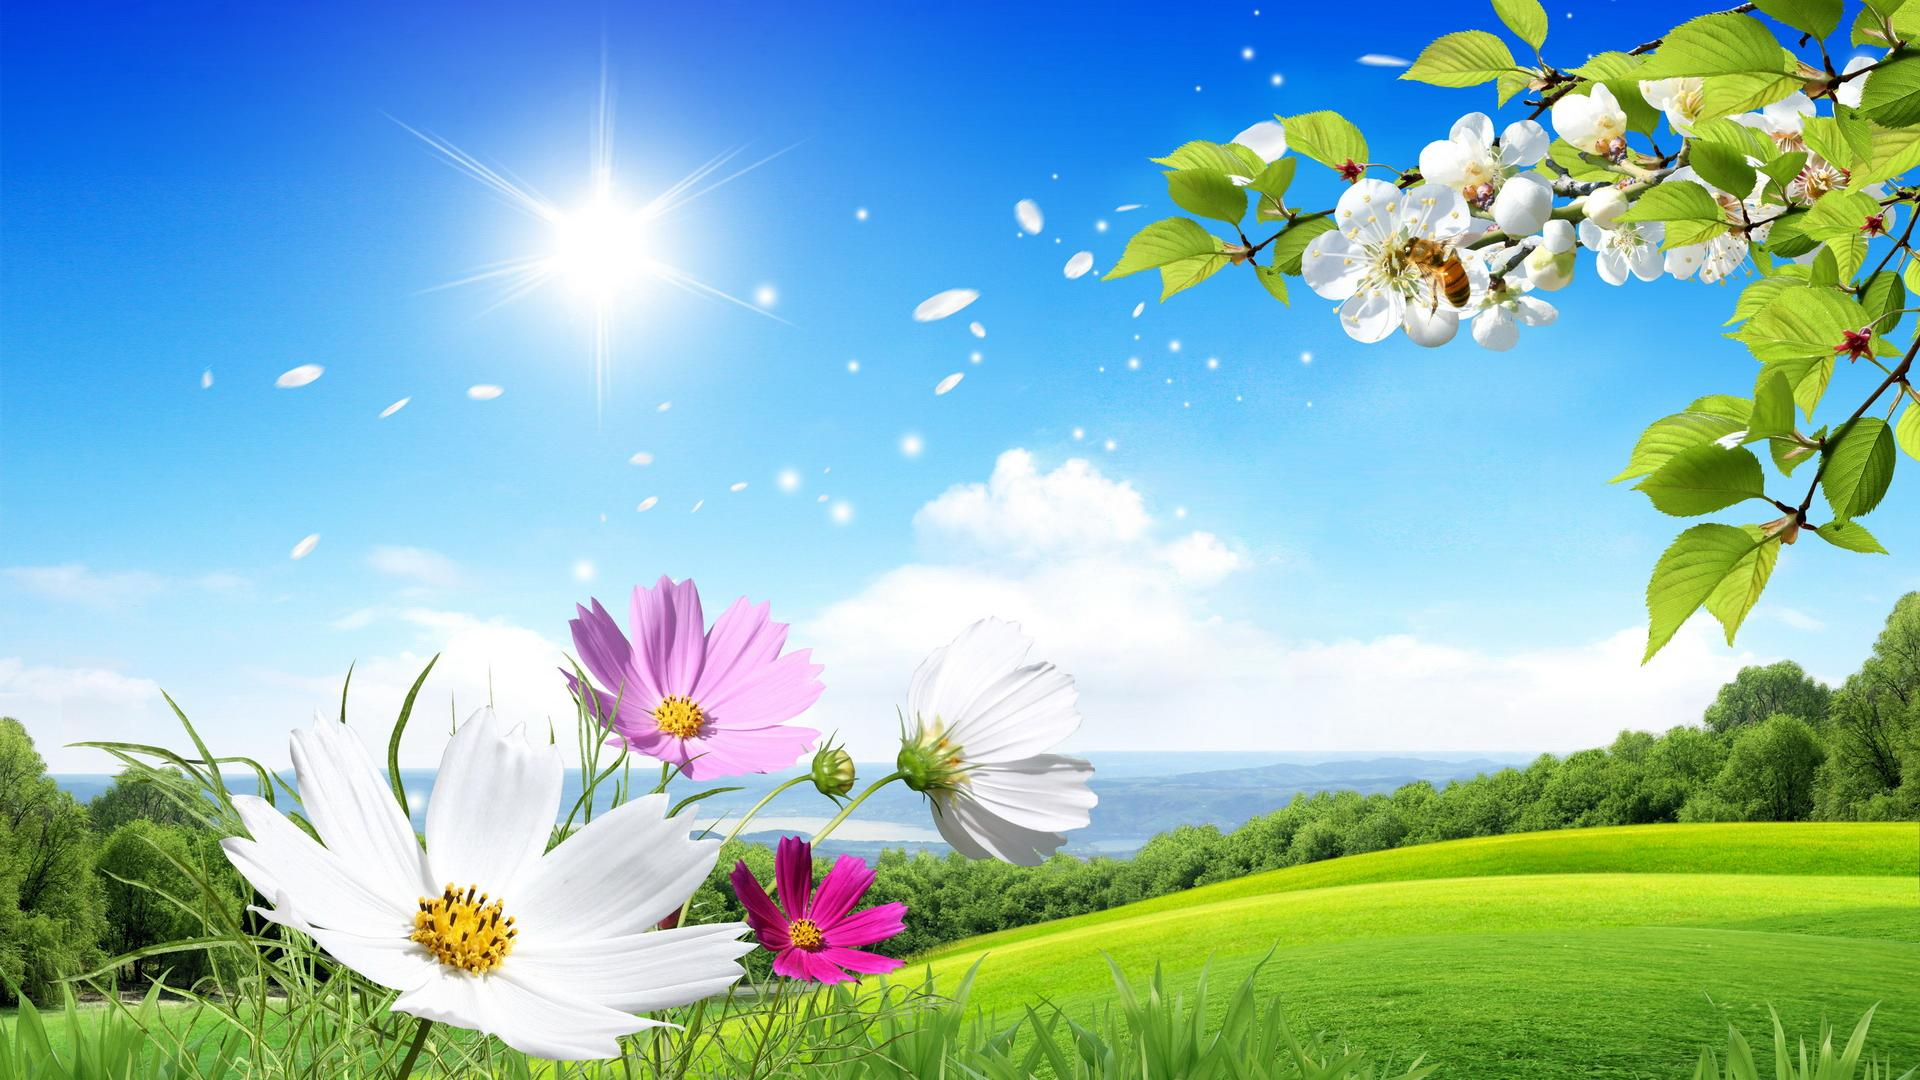 1920x1080 beautiful Summer and flowers scenery wallpaper 1920x1080